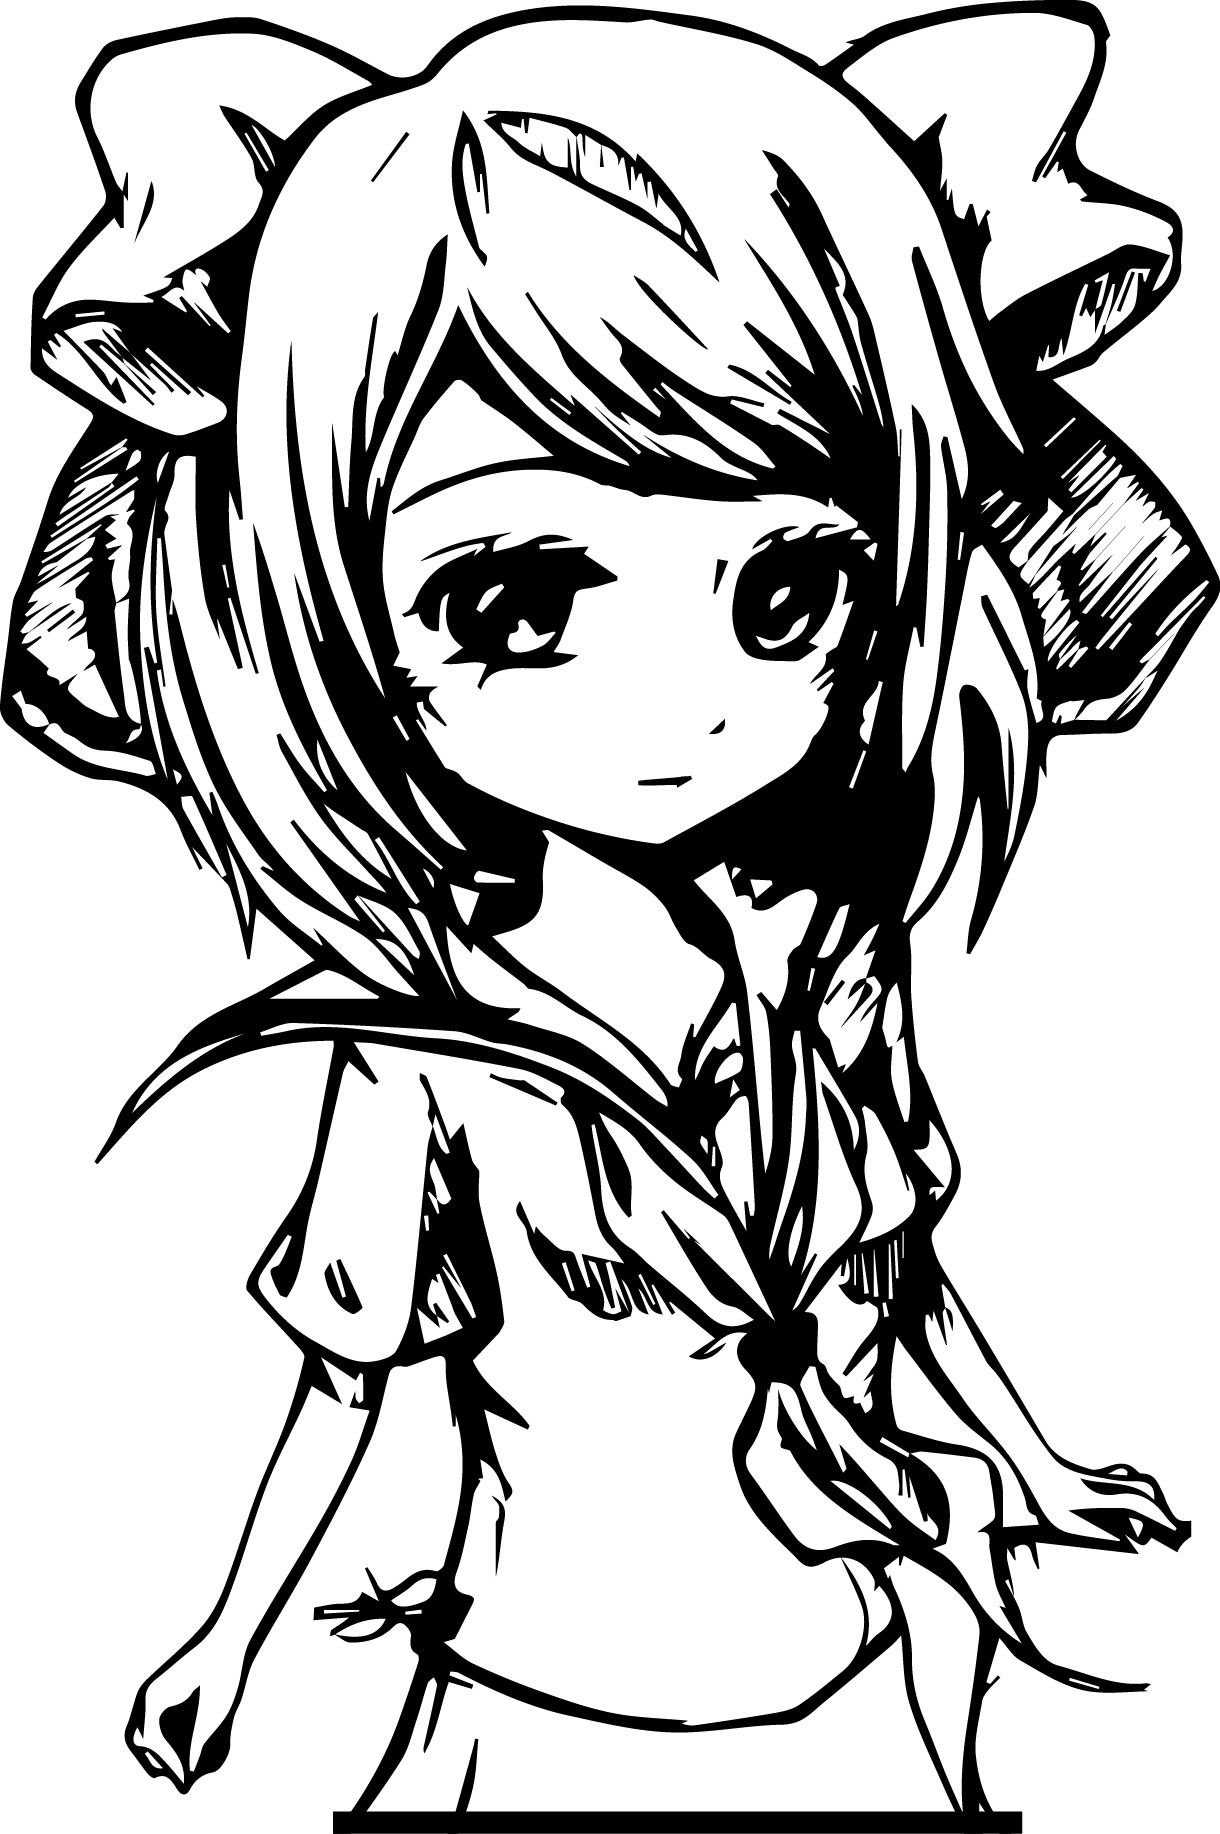 Hd Best Cute Anime Kitten Coloring Pages Mcoloring Anime Kitten Anime Kitten